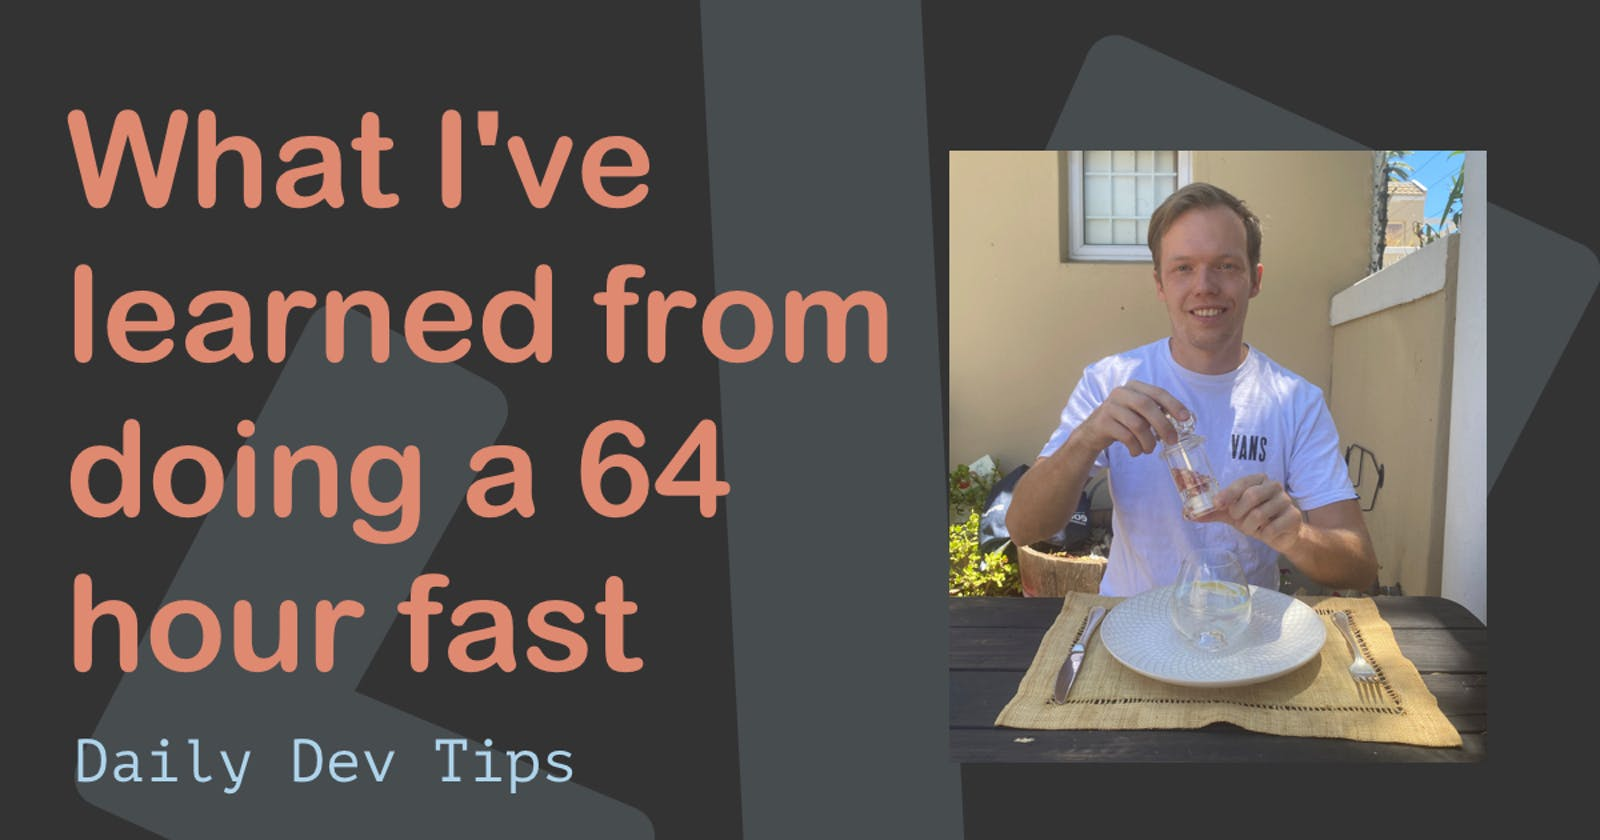 What I've learned from doing a 64 hour fast